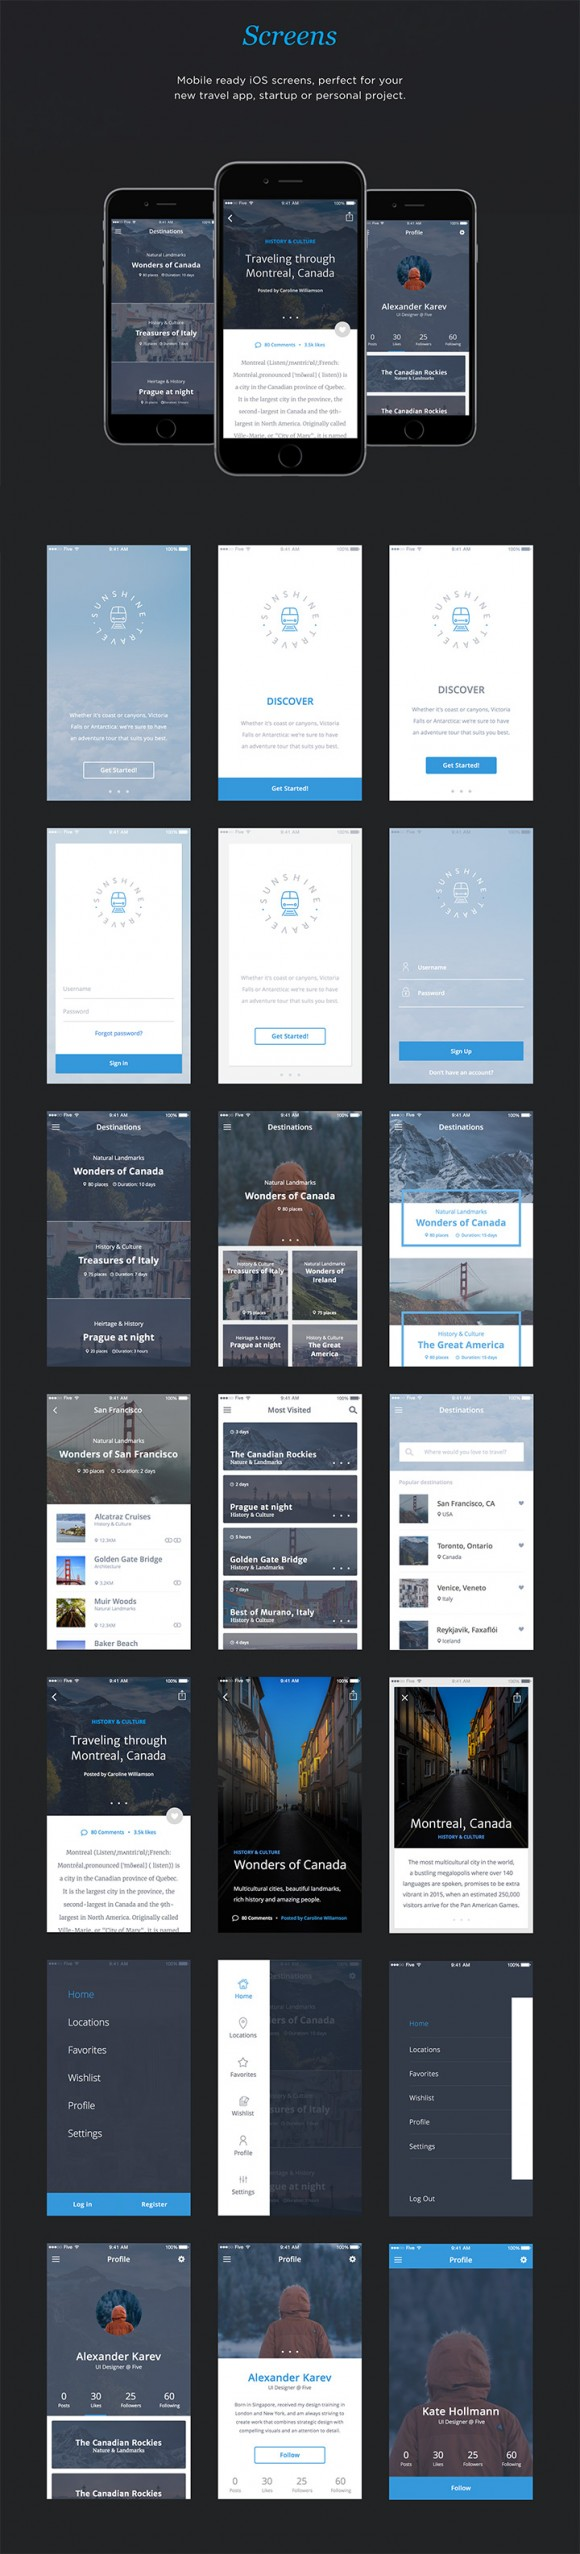 UI kit for travel apps - Detailed image